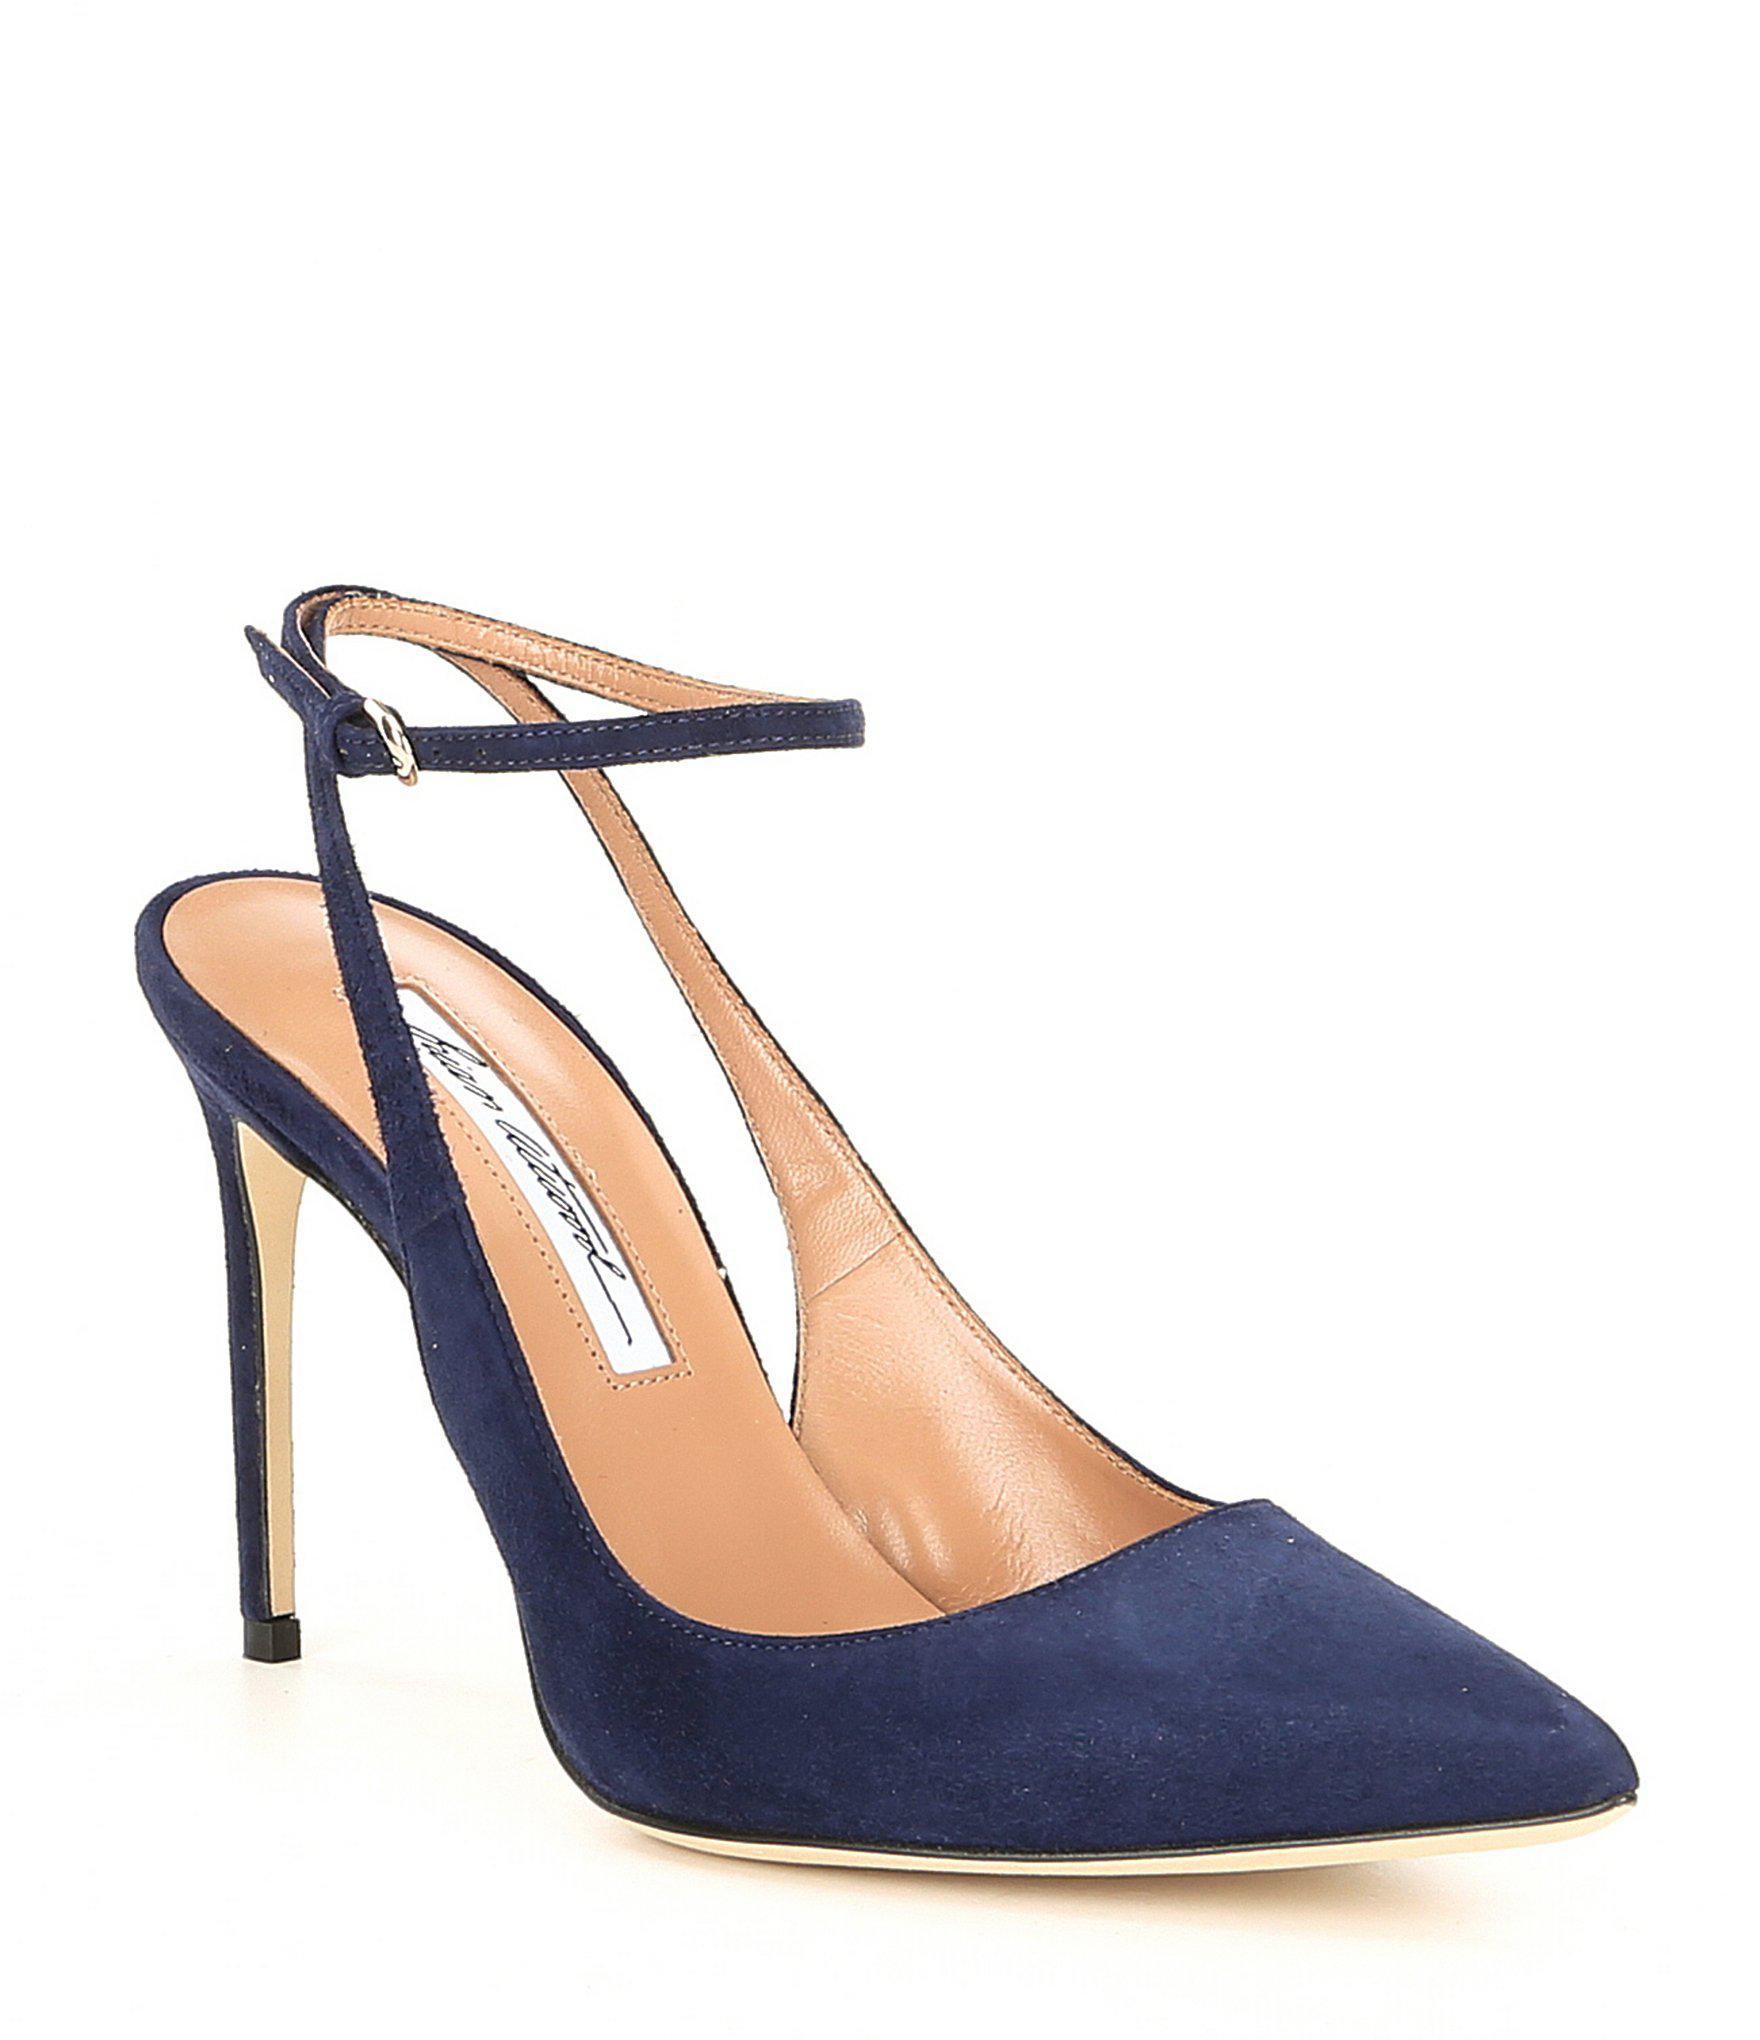 e0233571263a Lyst - Brian Atwood Vicky Pump Midnight Navy Suede in Blue - Save 30%